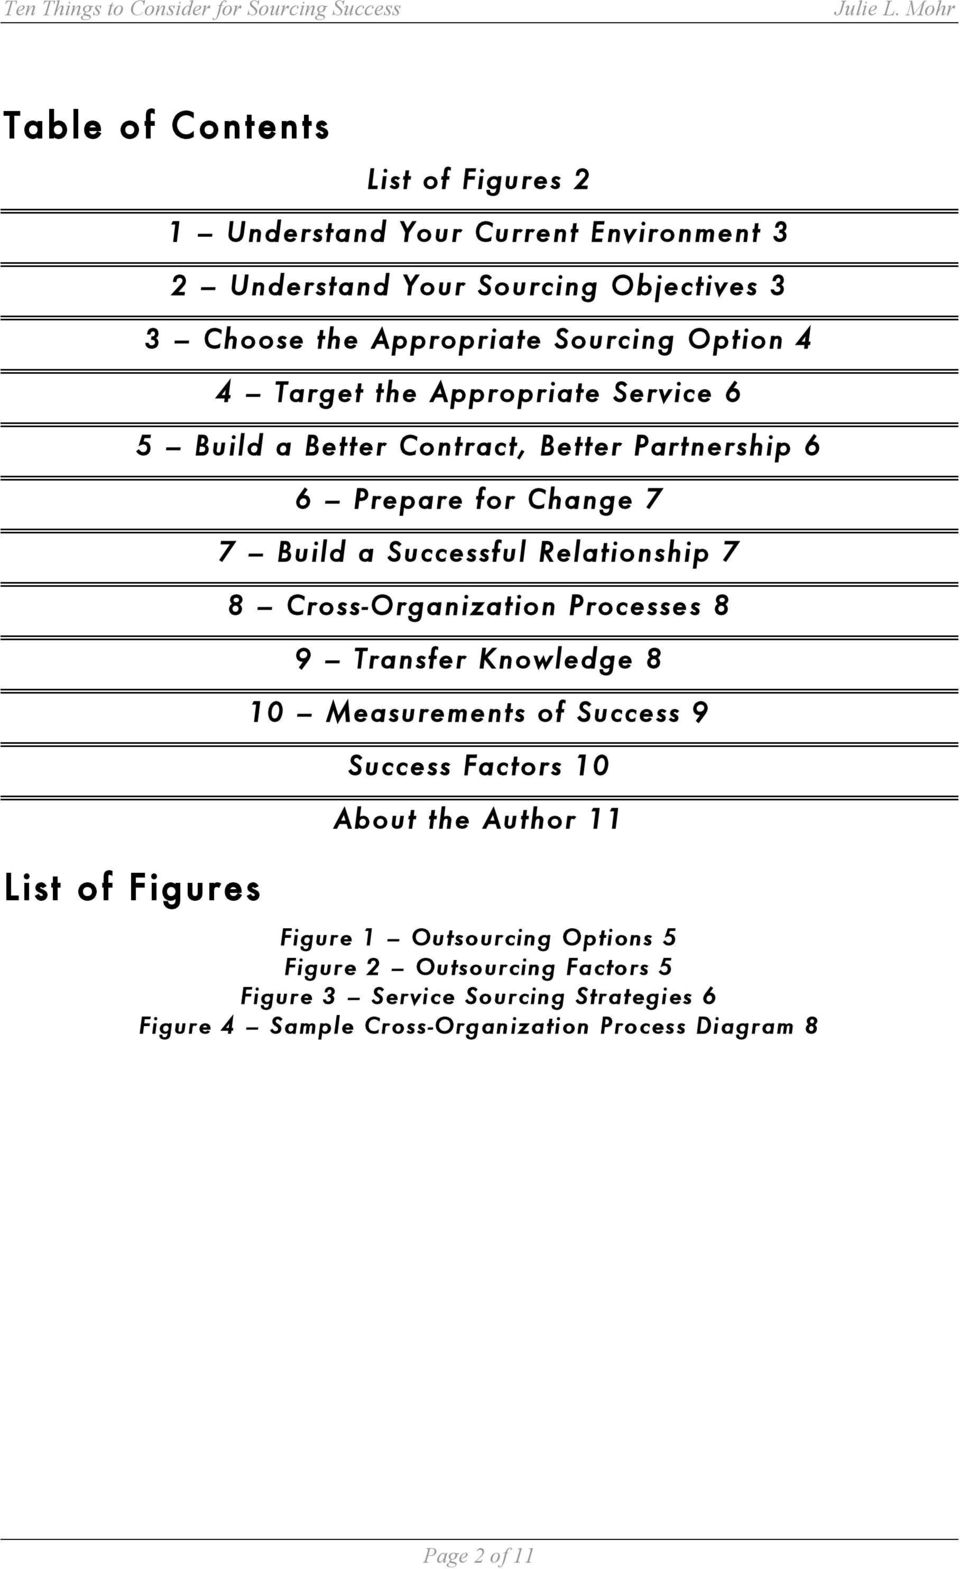 Successful Relationship 7 8 Cross-Organization Processes 8 9 Transfer Knowledge 8 10 Measurements of Success 9 Success Factors 10 About the Author 11